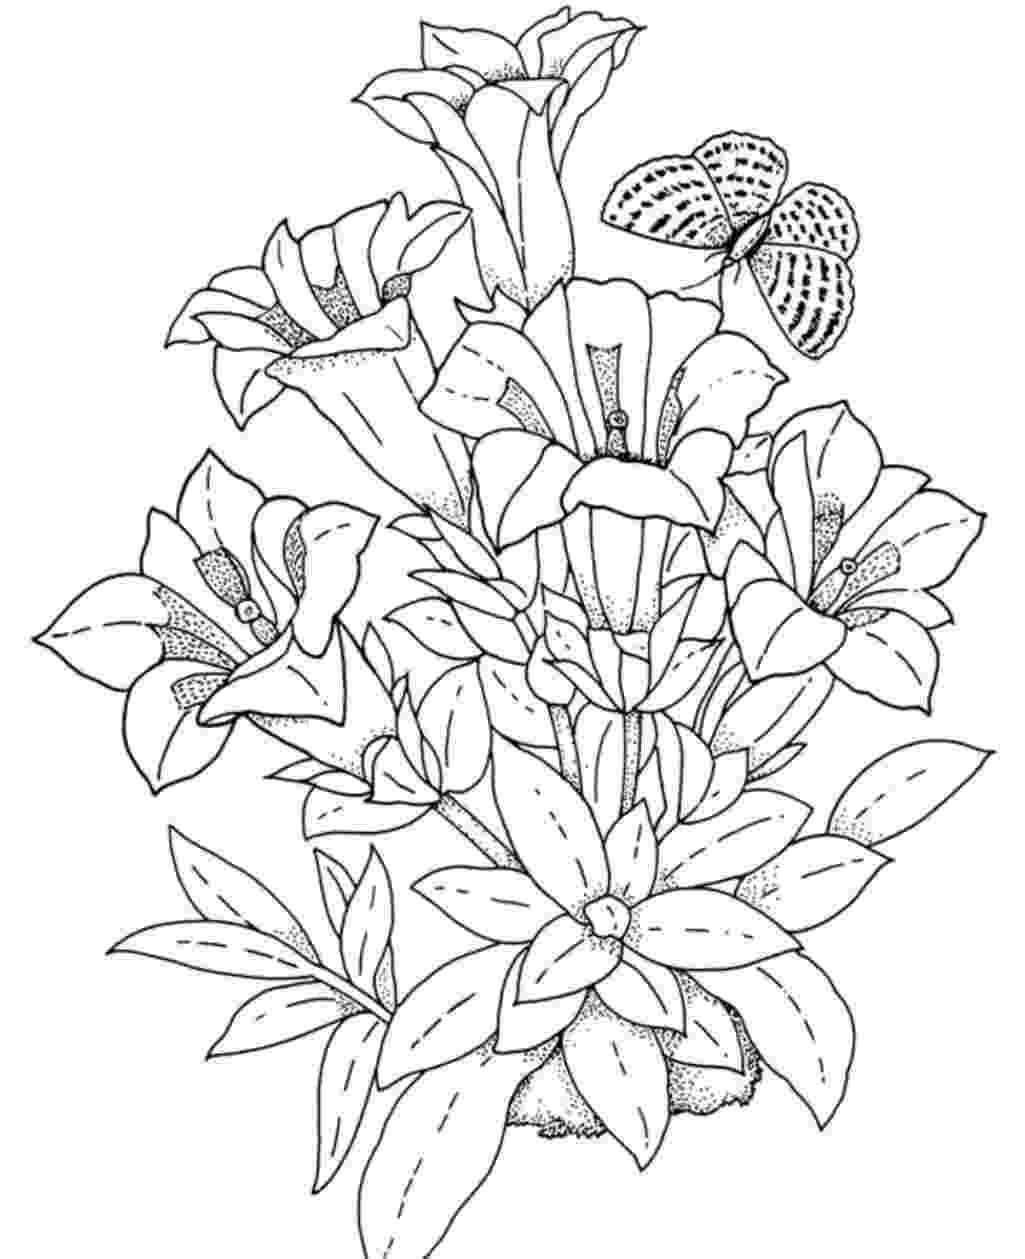 flower coloring books detailed flower coloring pages to download and print for free flower books coloring